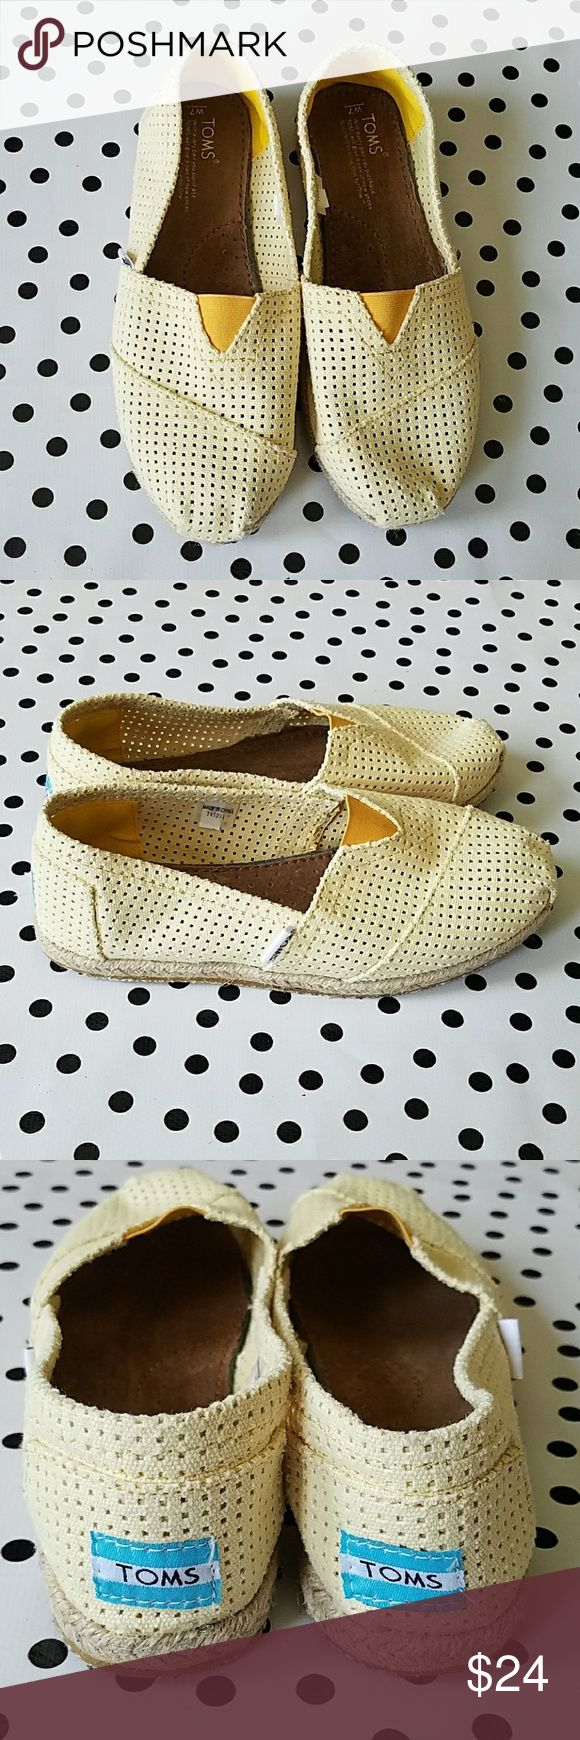 TOMS Freetown Classics Espadrille Slip-On TOMS Freetown Classics Espadrille Slip-On Perforated canvas shapes an airy, lightweight slip-on set on a summery, espadrille sole. Jute wrapped sole.  Elastic goring at instep. Cotton upper/suede insole/rubber sole. Butter yellow. Size 7. Very good used condition. No flaws,? minor surface dirt on soles. TOMS Shoes